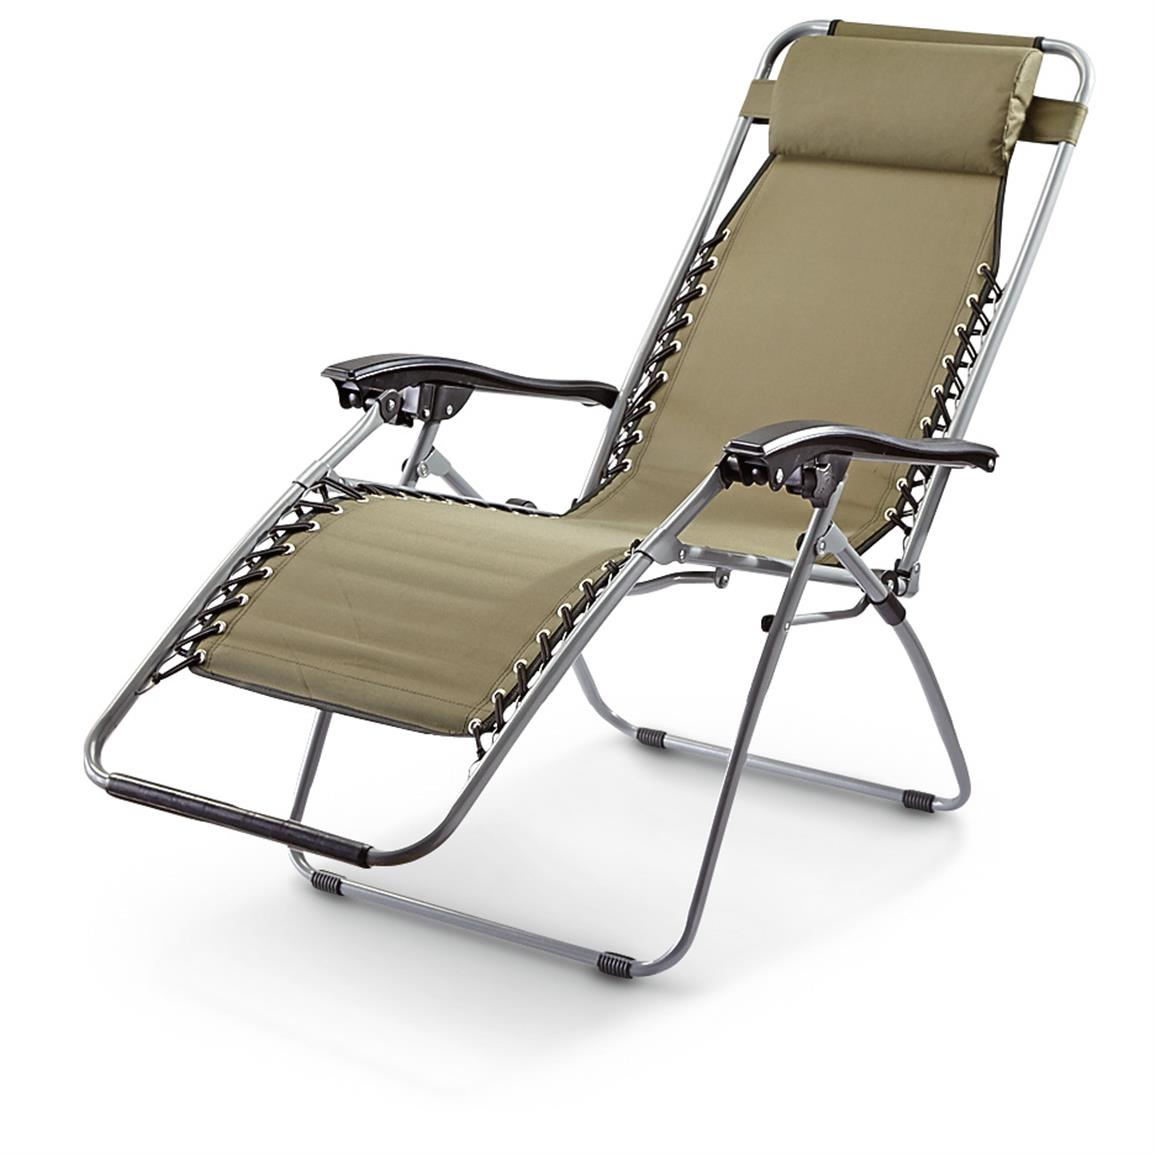 anti gravity lawn chair boon flair high review mac sports lounger 625805 chairs at